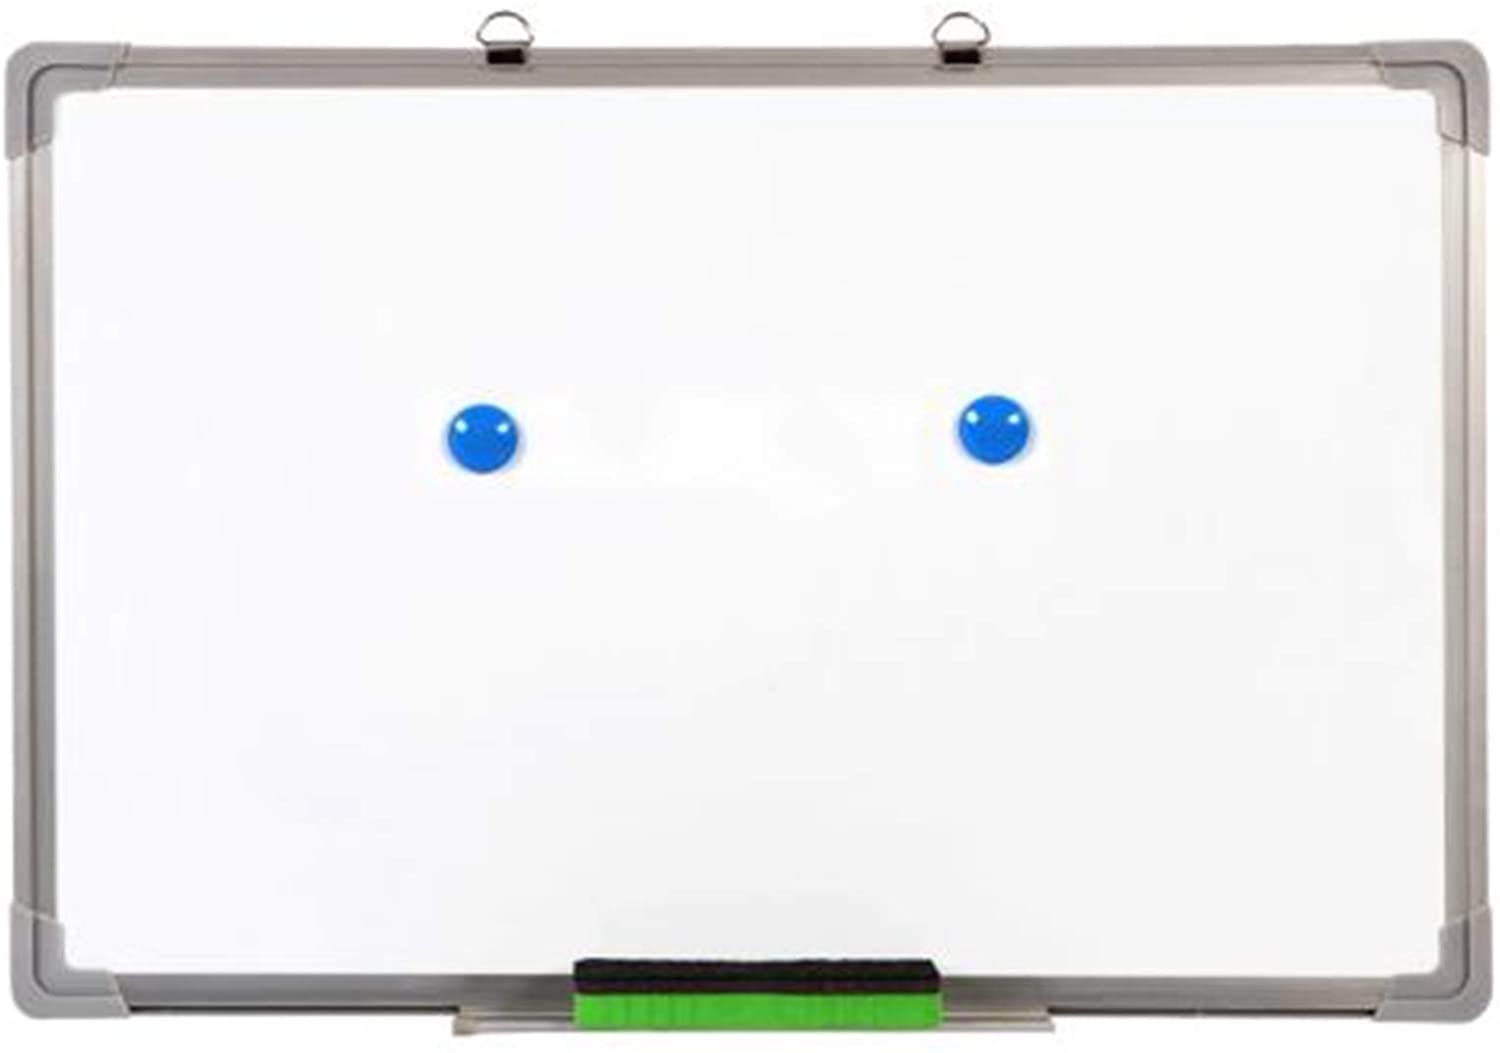 Single Sided Magnetic Dry-Erase Whiteboard with Marker, Eraser, 2pcs Magnets (23.6x15.8)